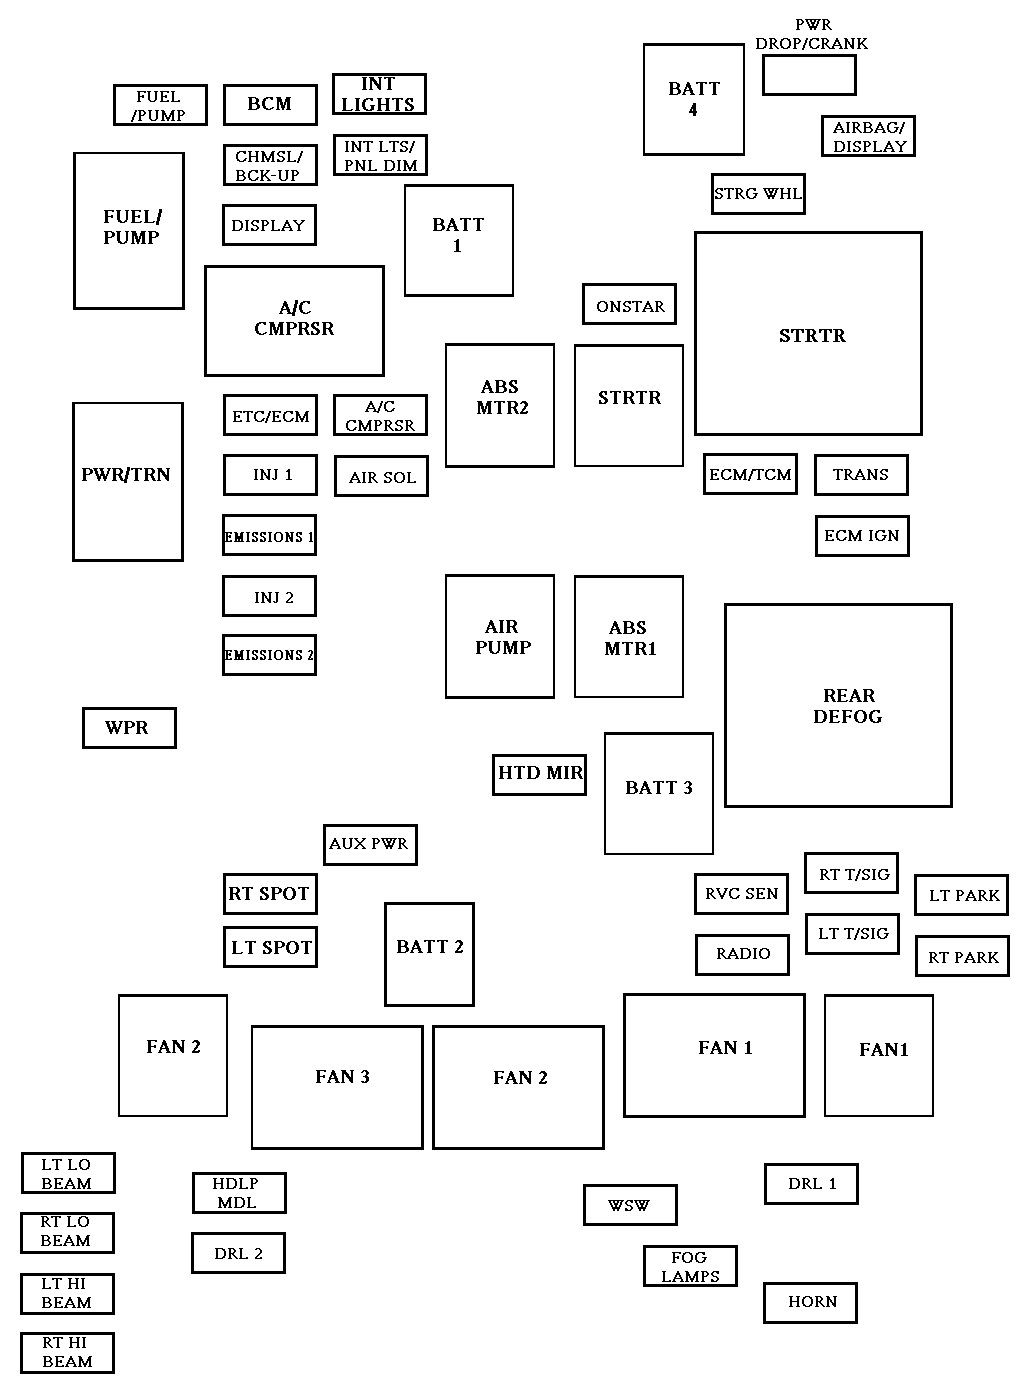 2003 Chevy Impala Fuse Box Diagram : 34 Wiring Diagram